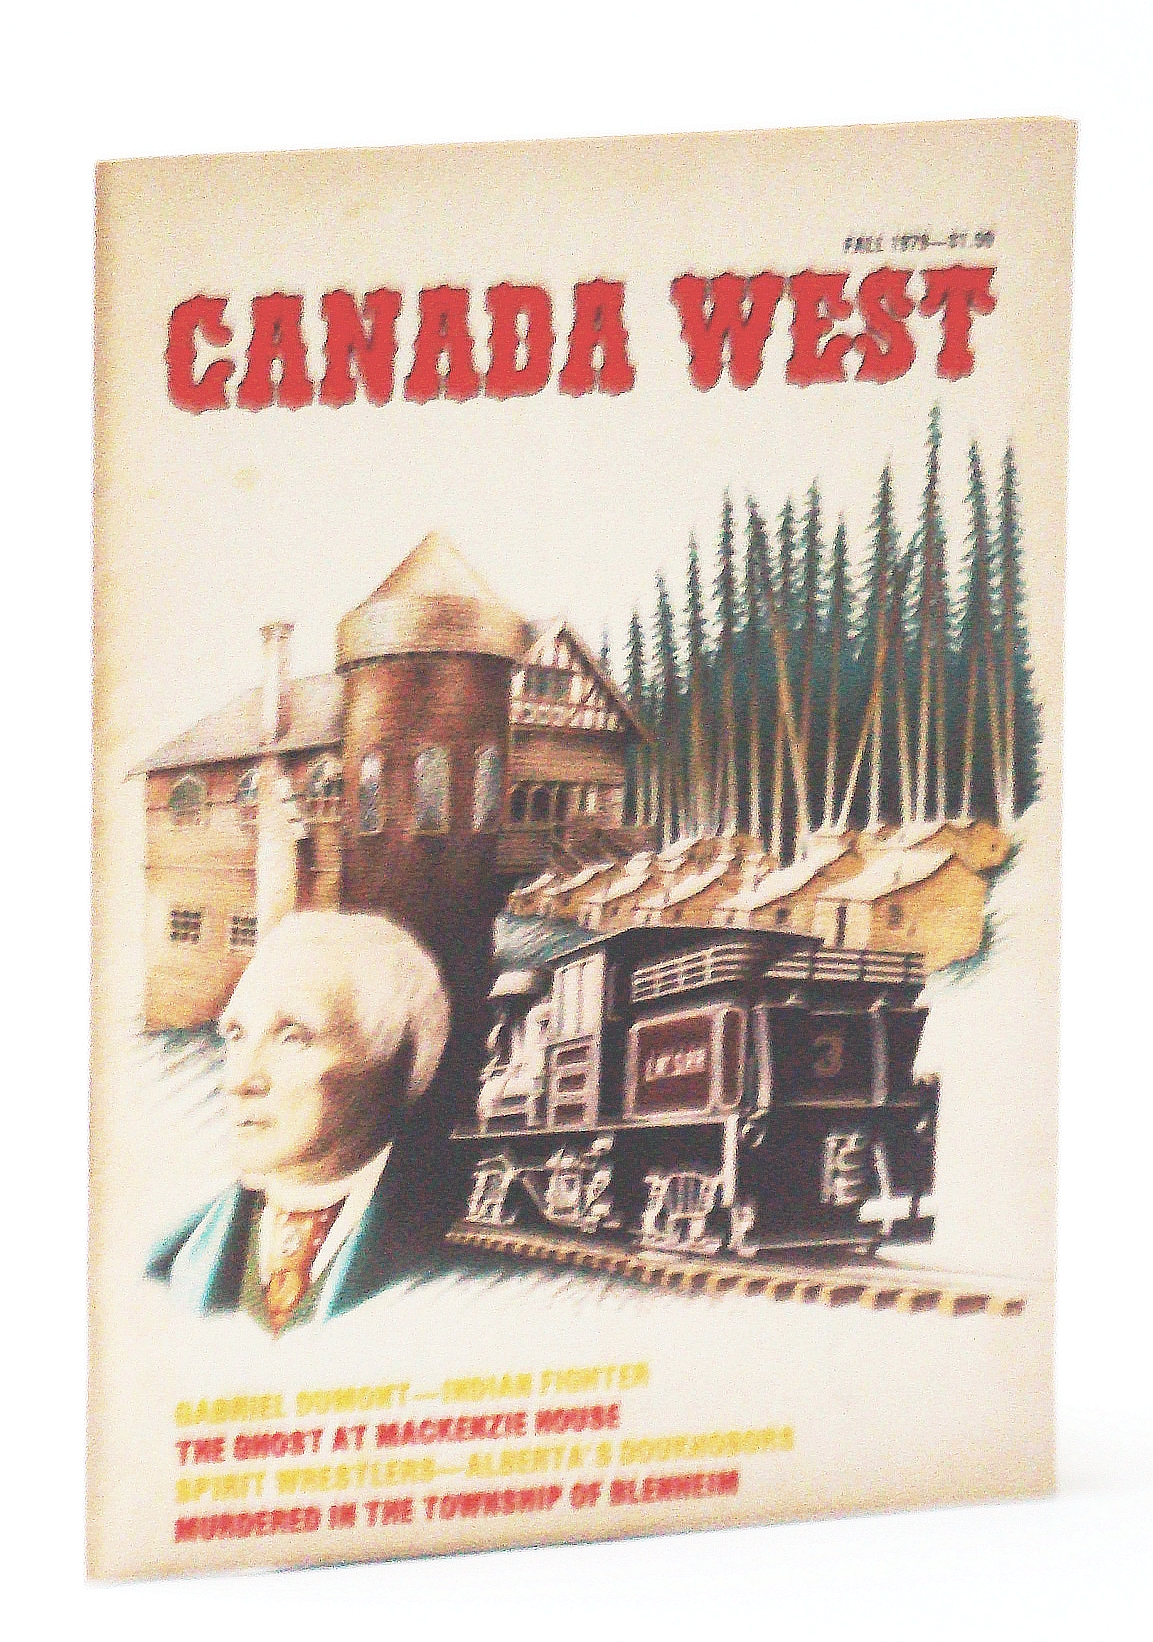 Image for Canada West Magazine - The Pioneer Years, Fall 1979, Volume 9, Number 3, Collector's Number 35 - Alberta's Doukhobors